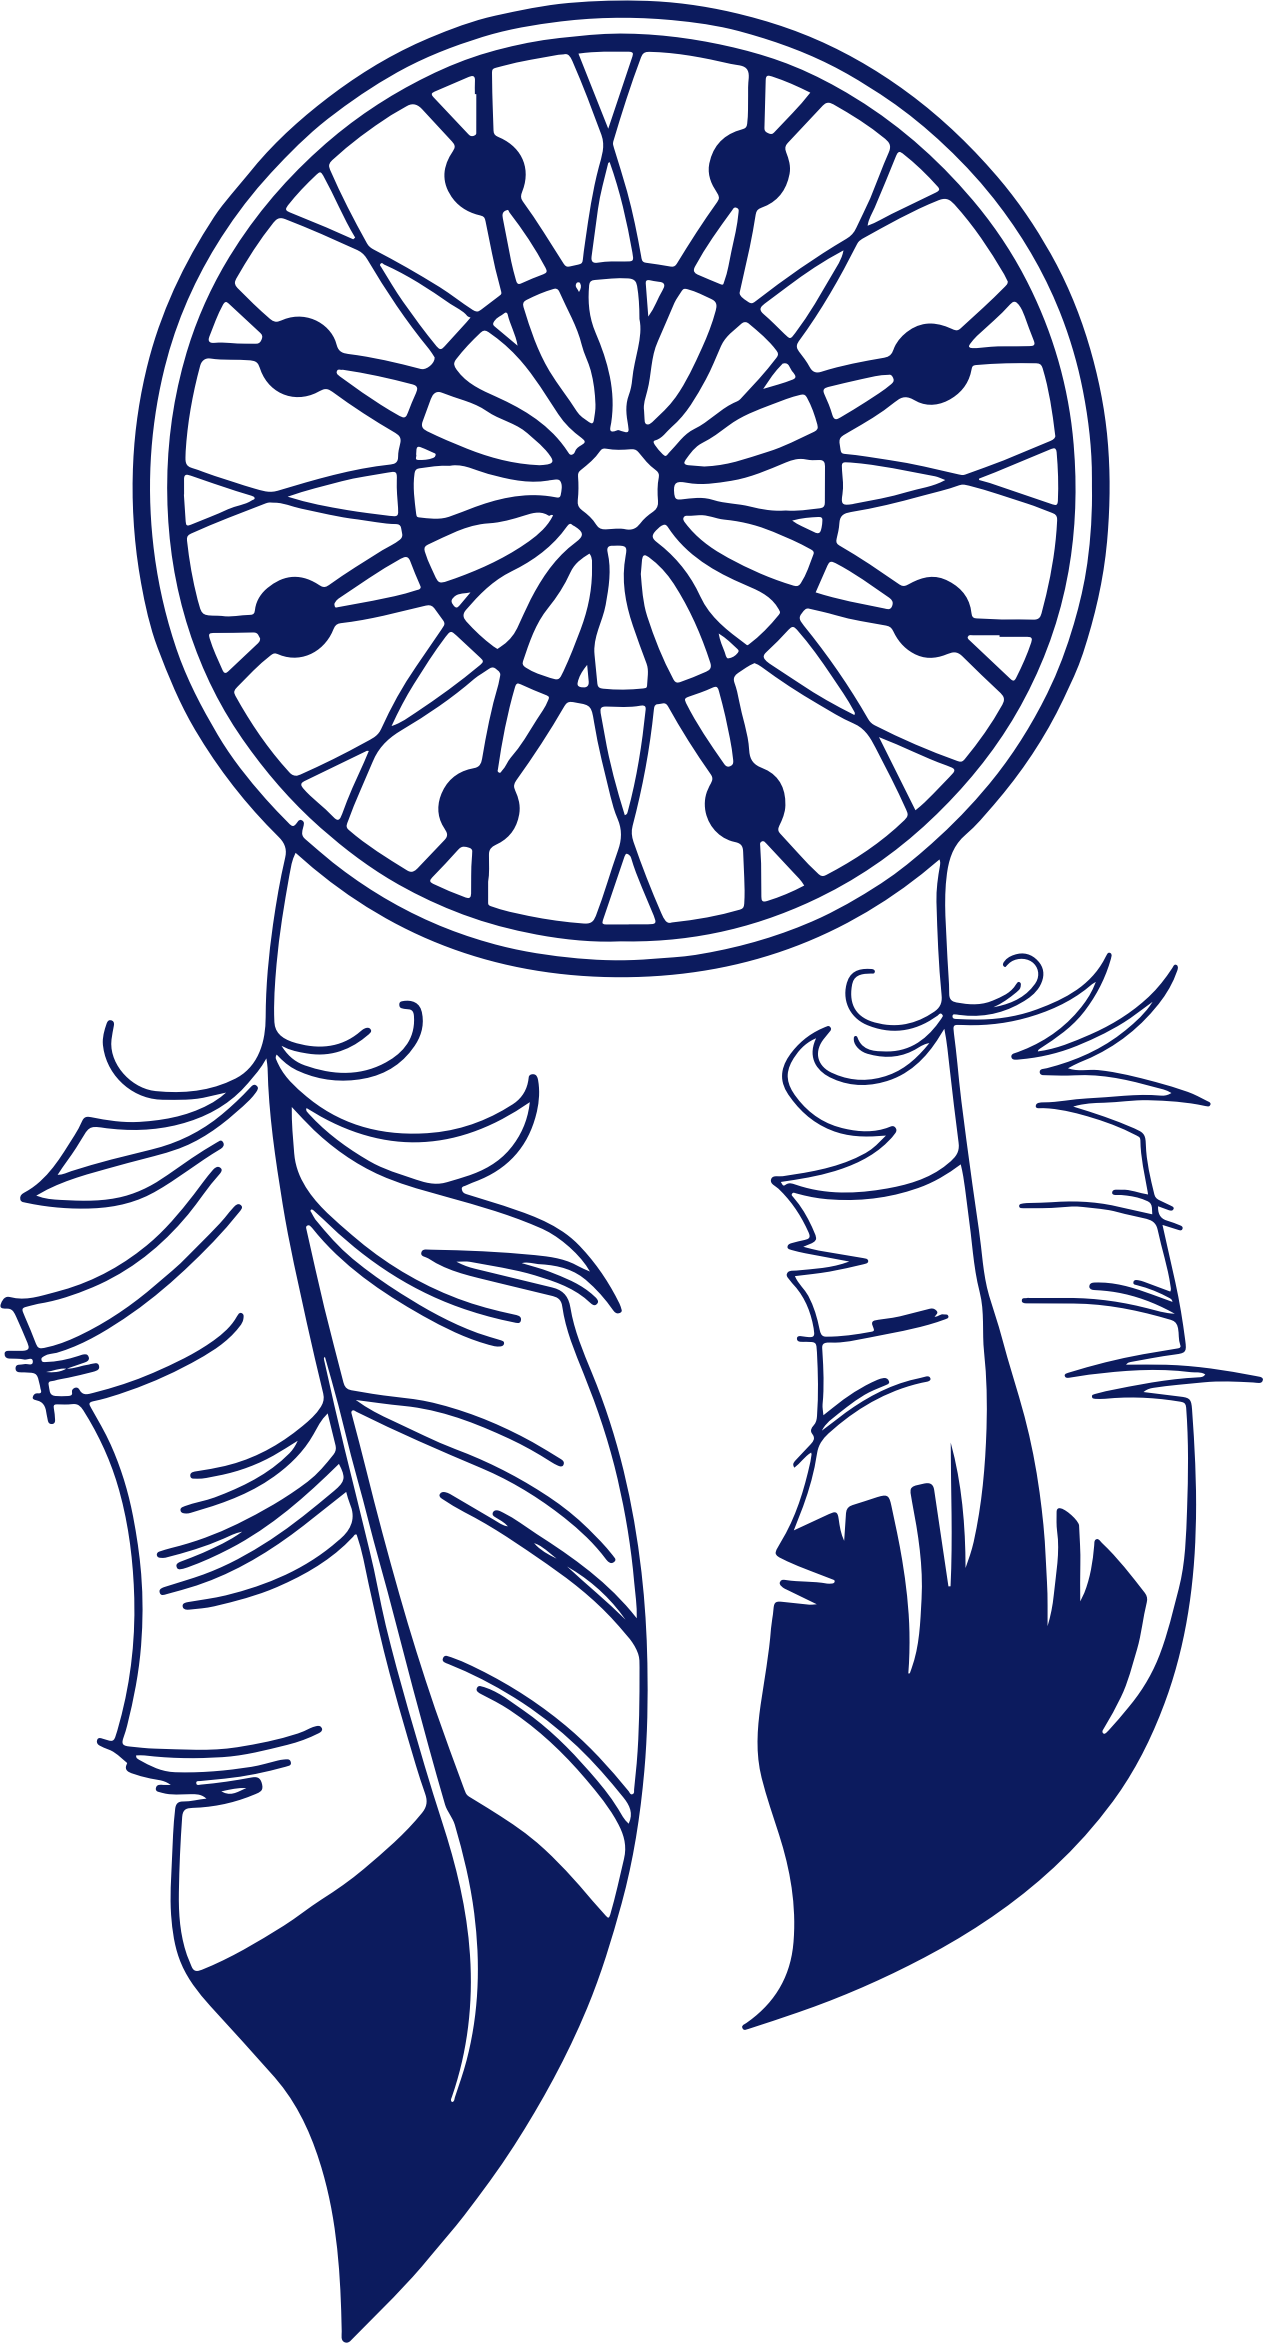 Dream catcher silhouette png. By gdj cricuts silhouettes